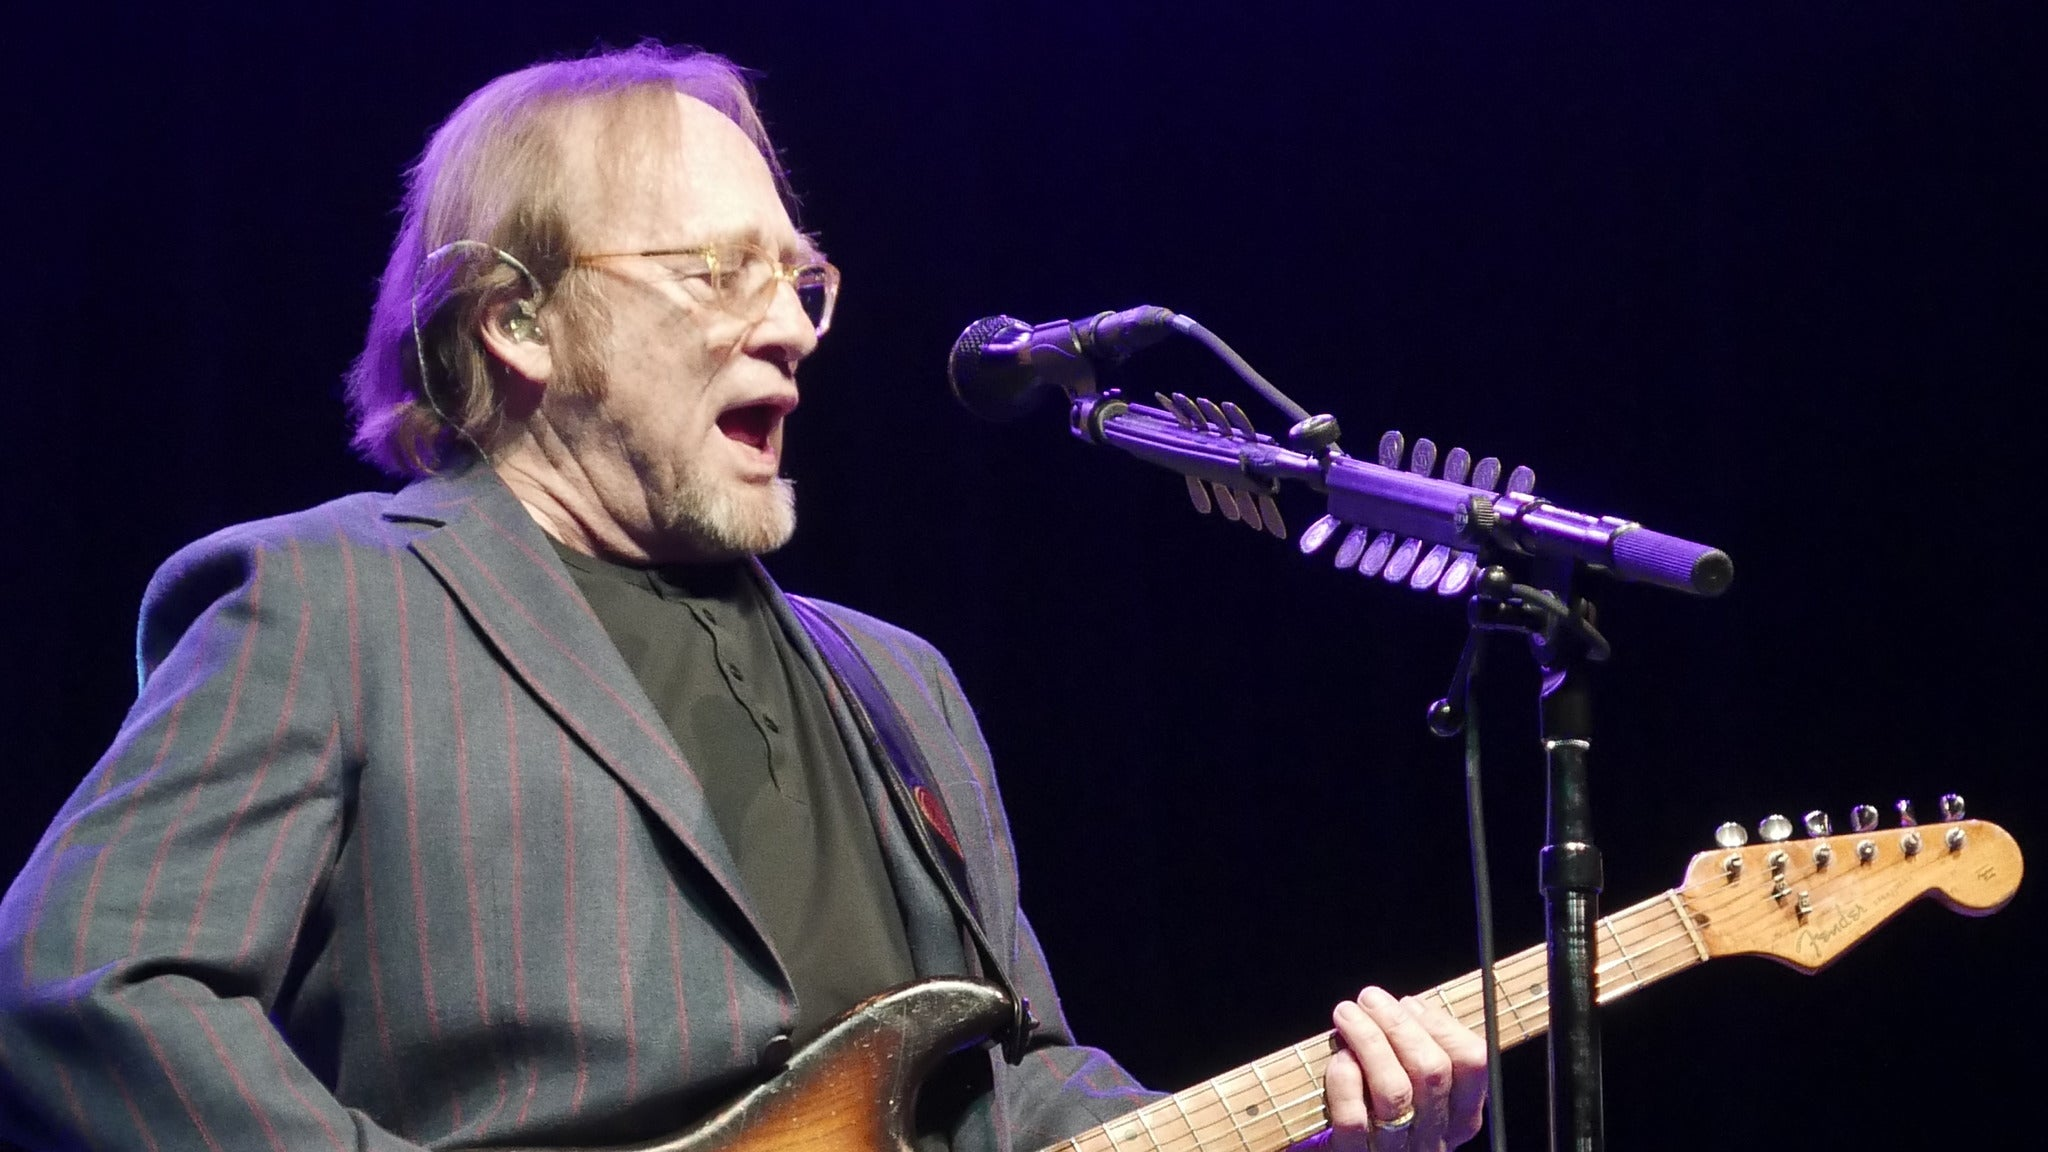 Stephen Stills & Judy Collins at Arlington Theatre